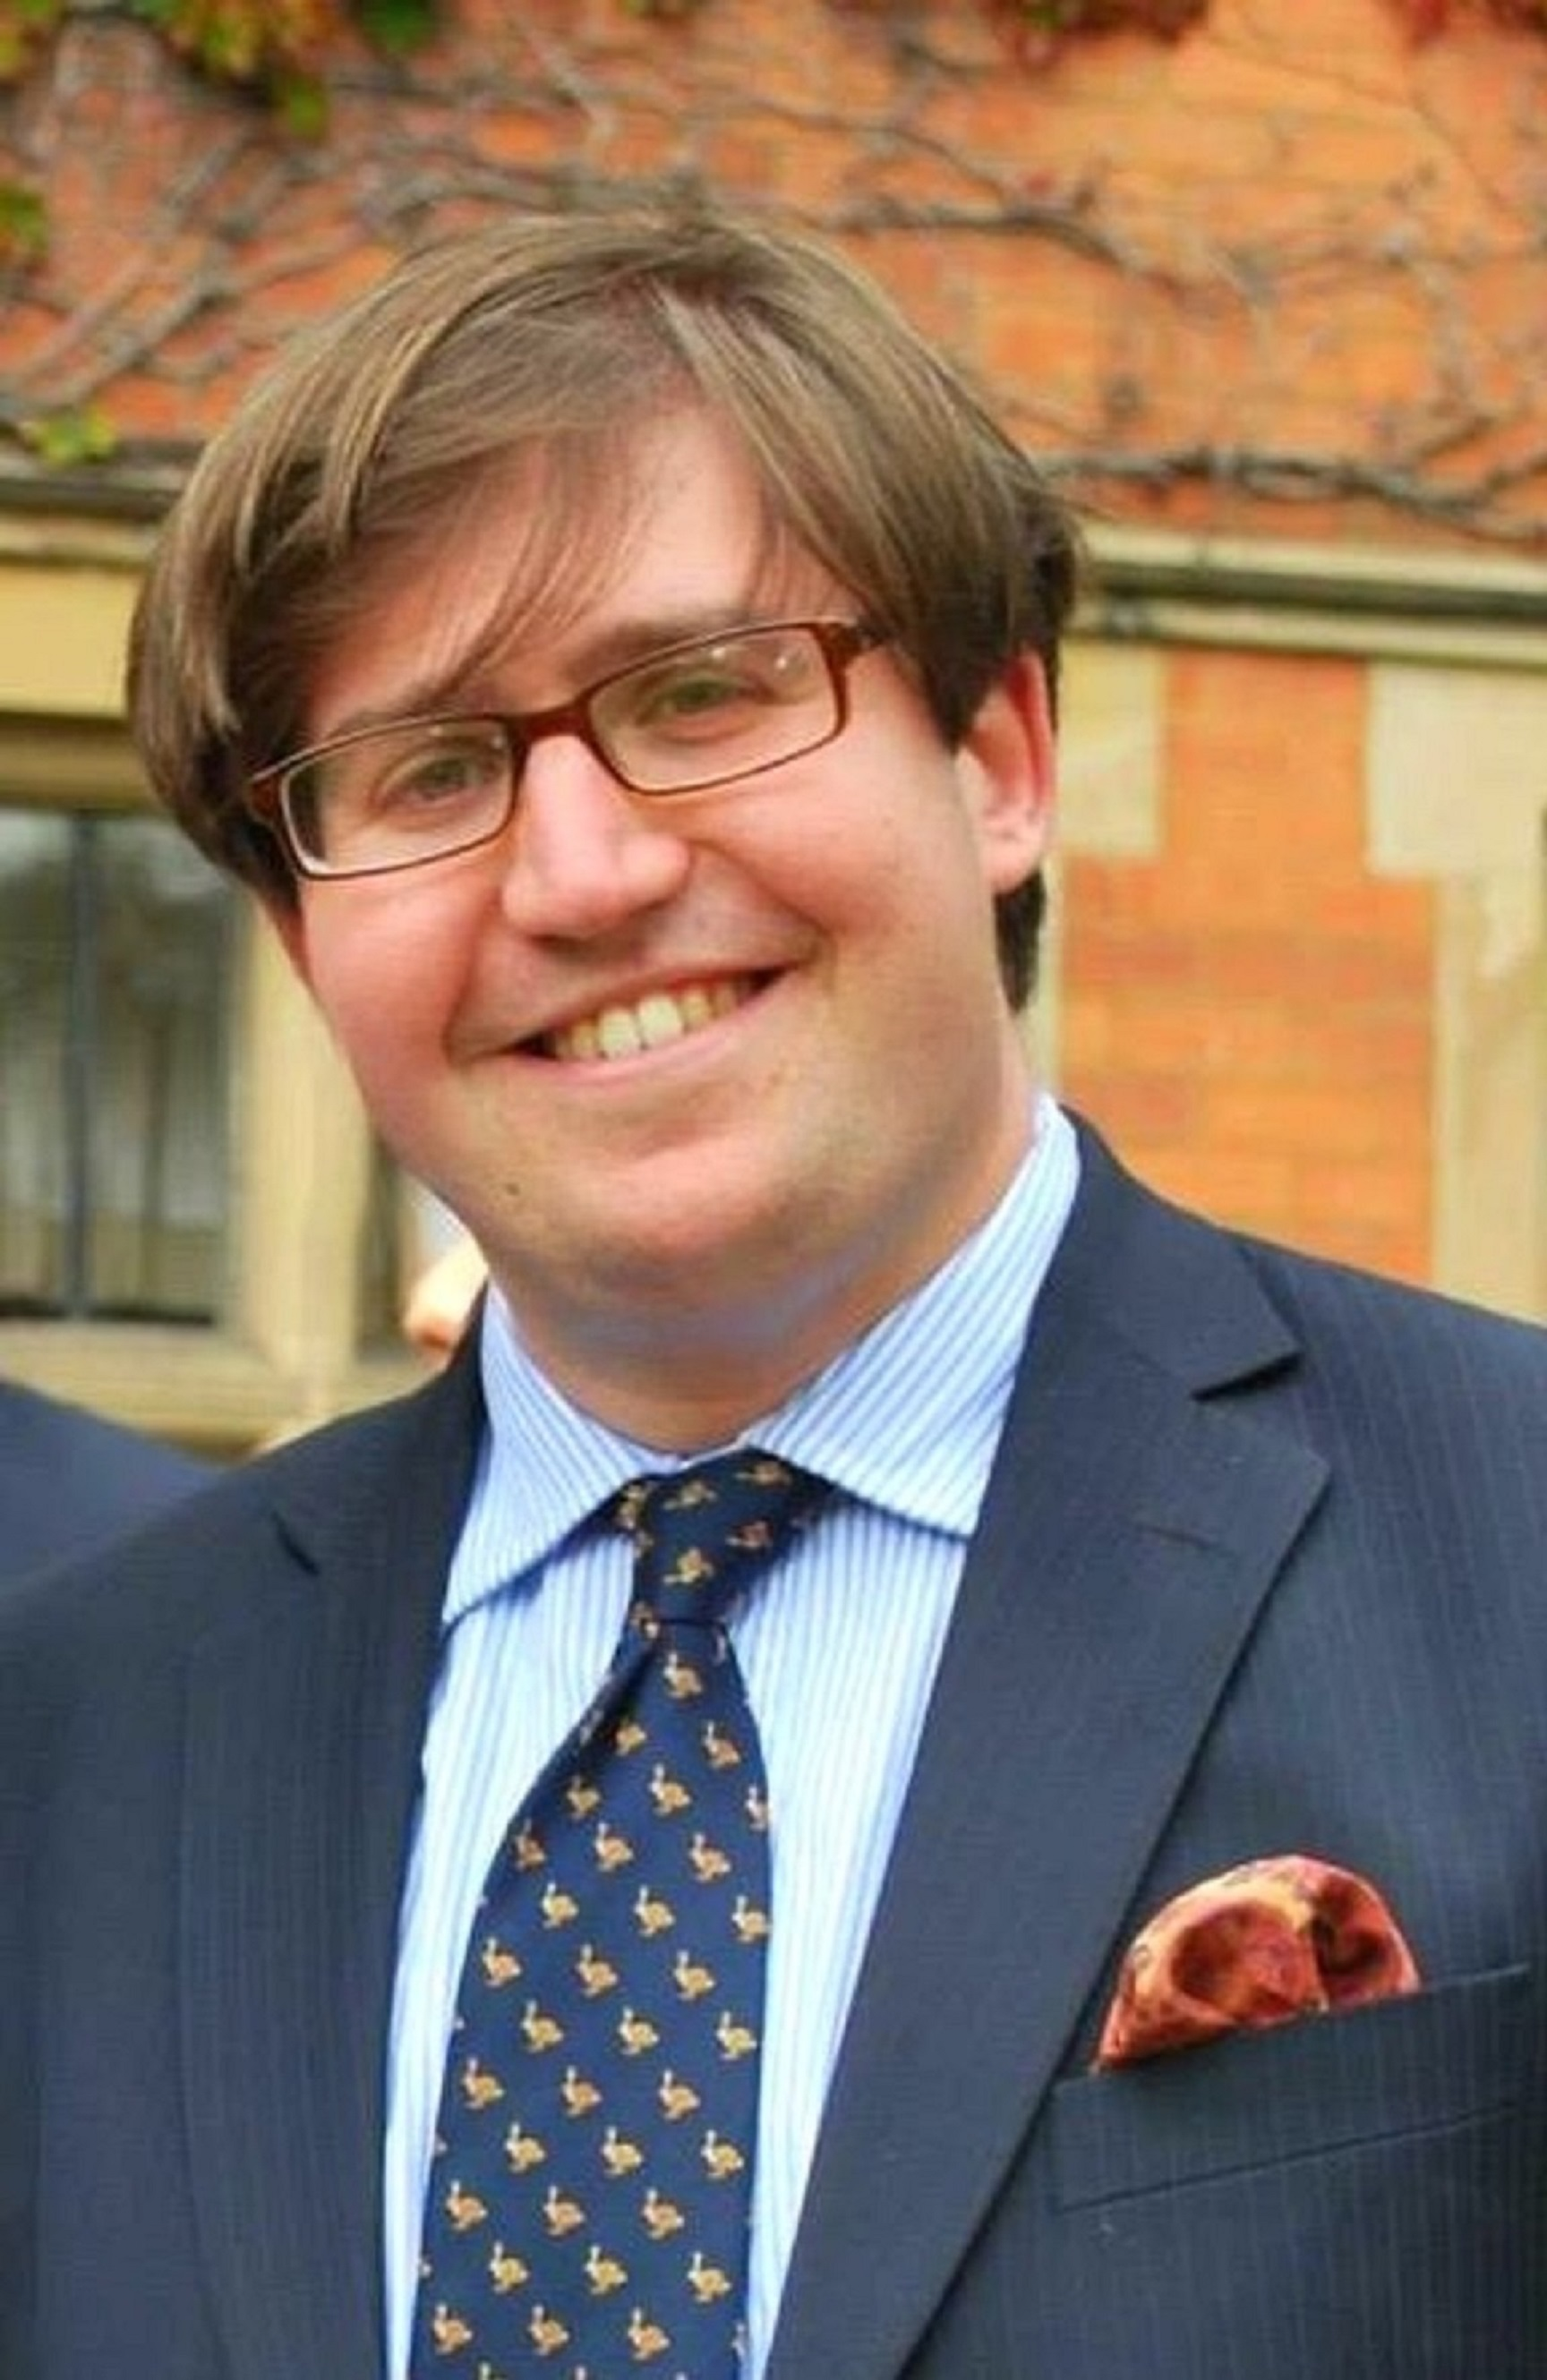 Liberal Democrat parliamentary candidate for Romsey and Southampton North, Ben Nicholls